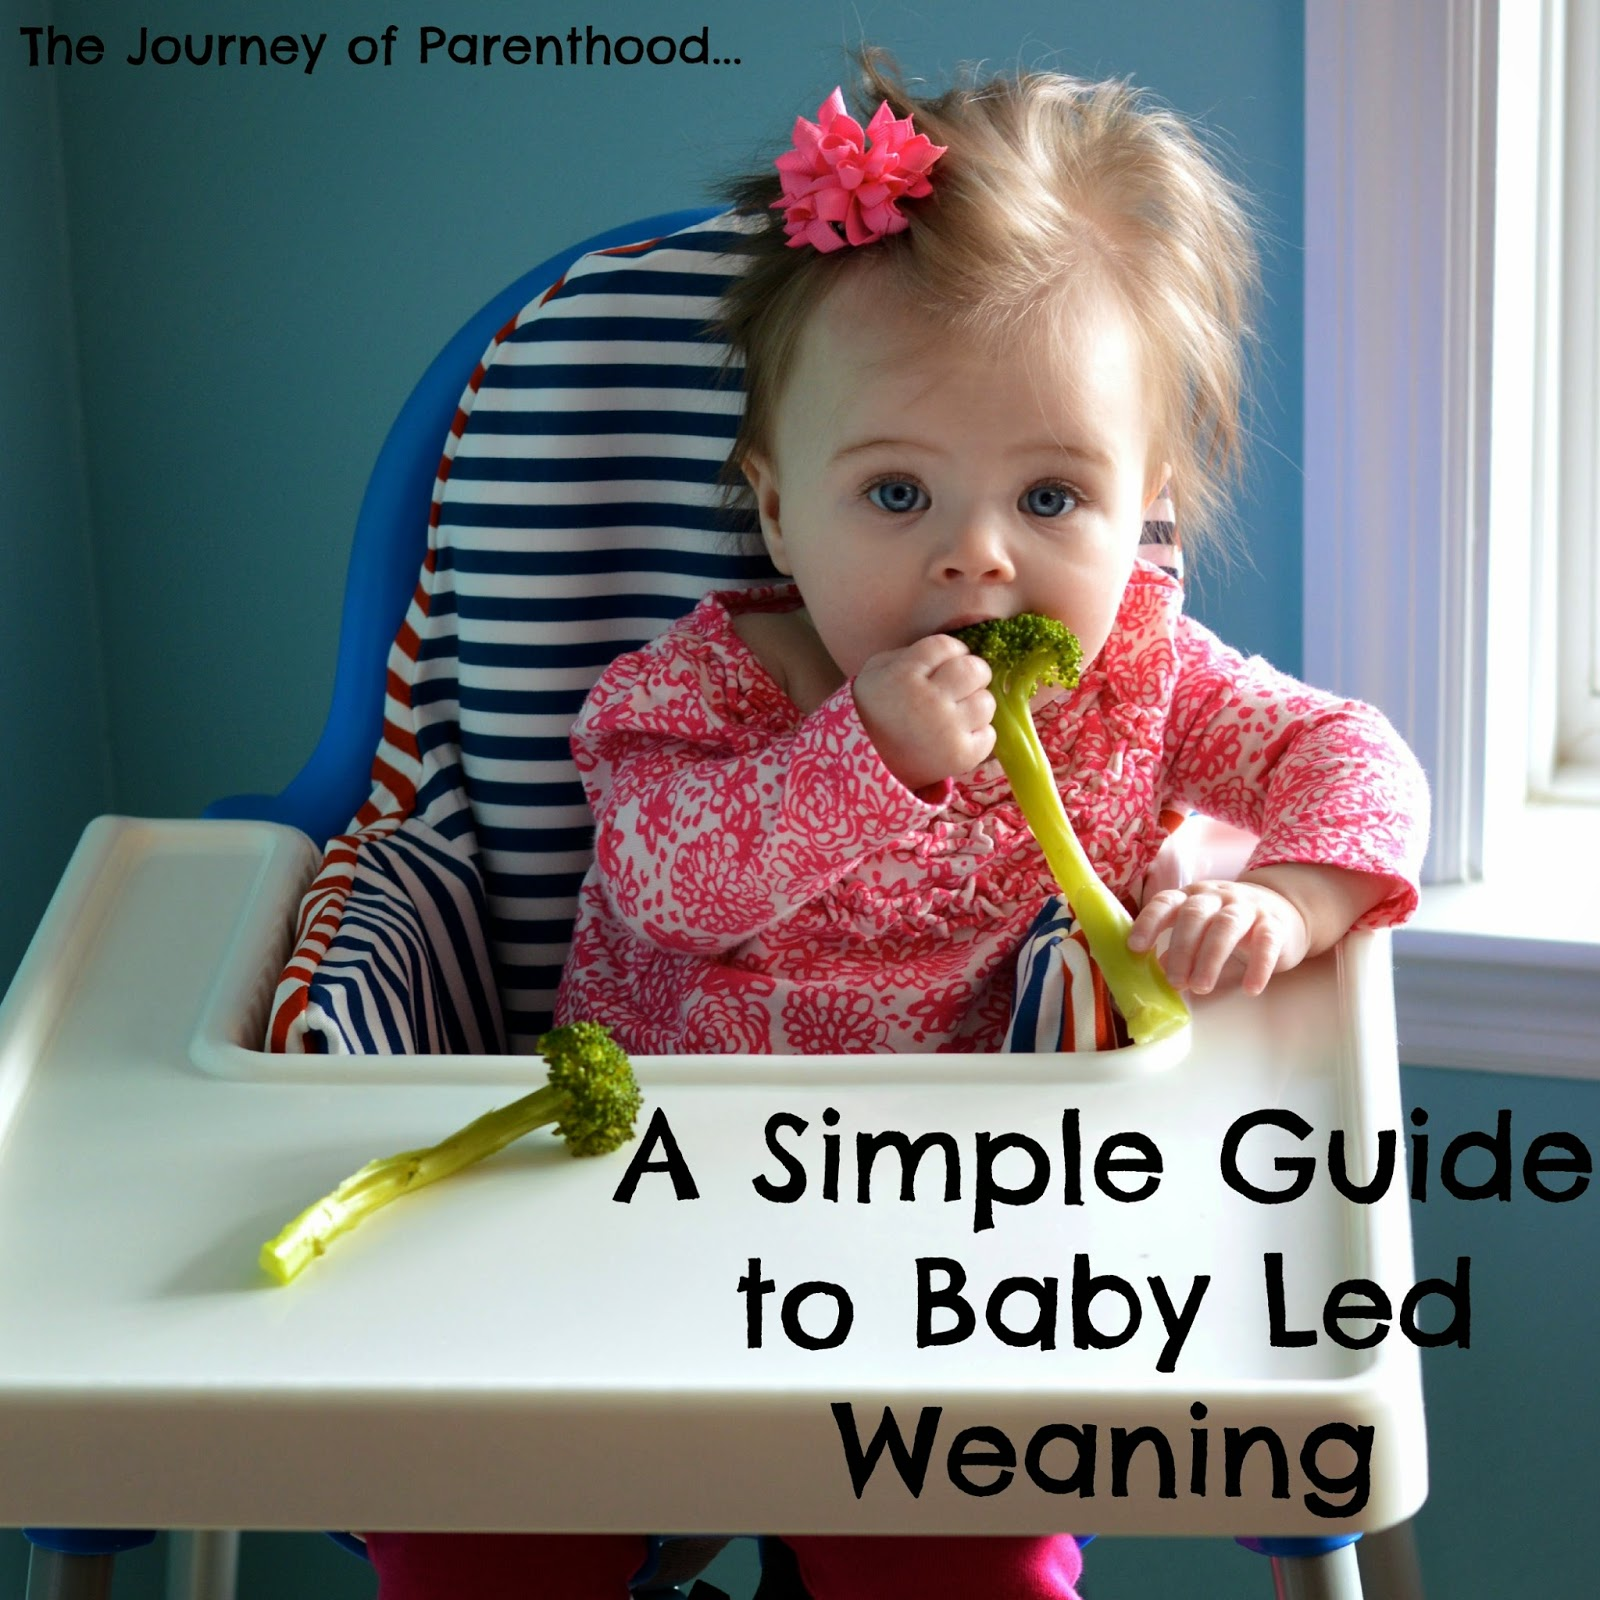 a simple beginner's guide to baby led weaning for feeding baby